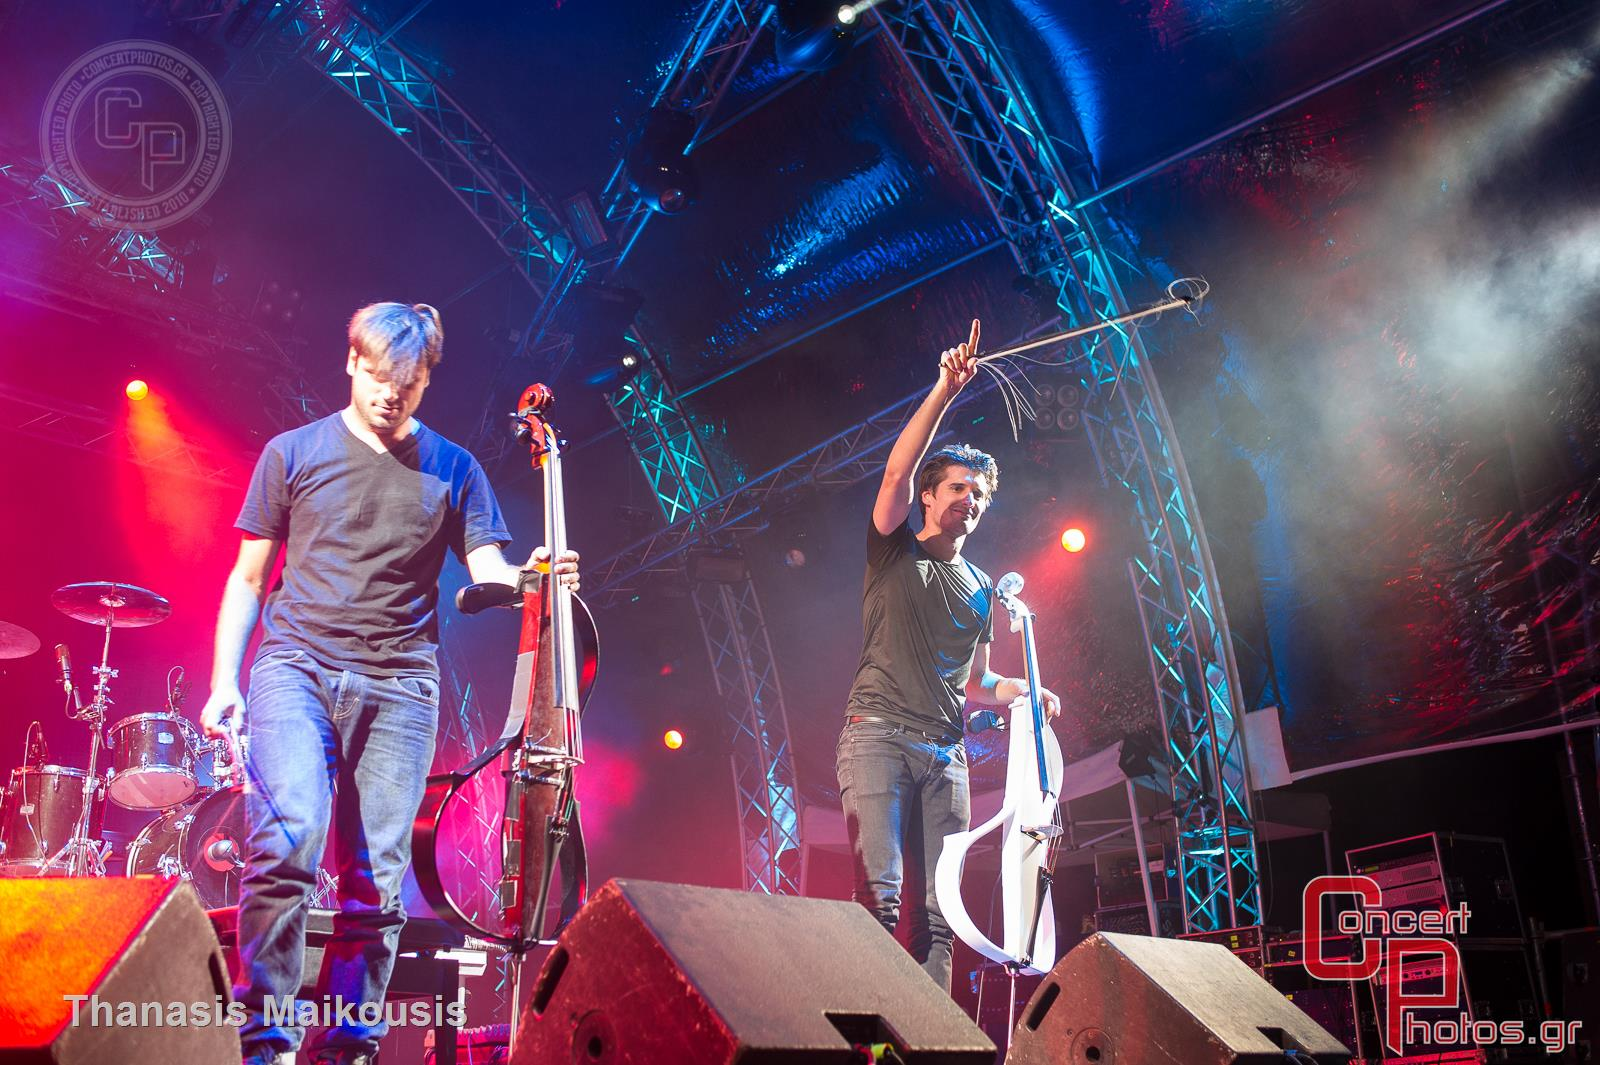 2Cellos-2Cellos Technopolis photographer: Thanasis Maikousis - untitled shoot-6221